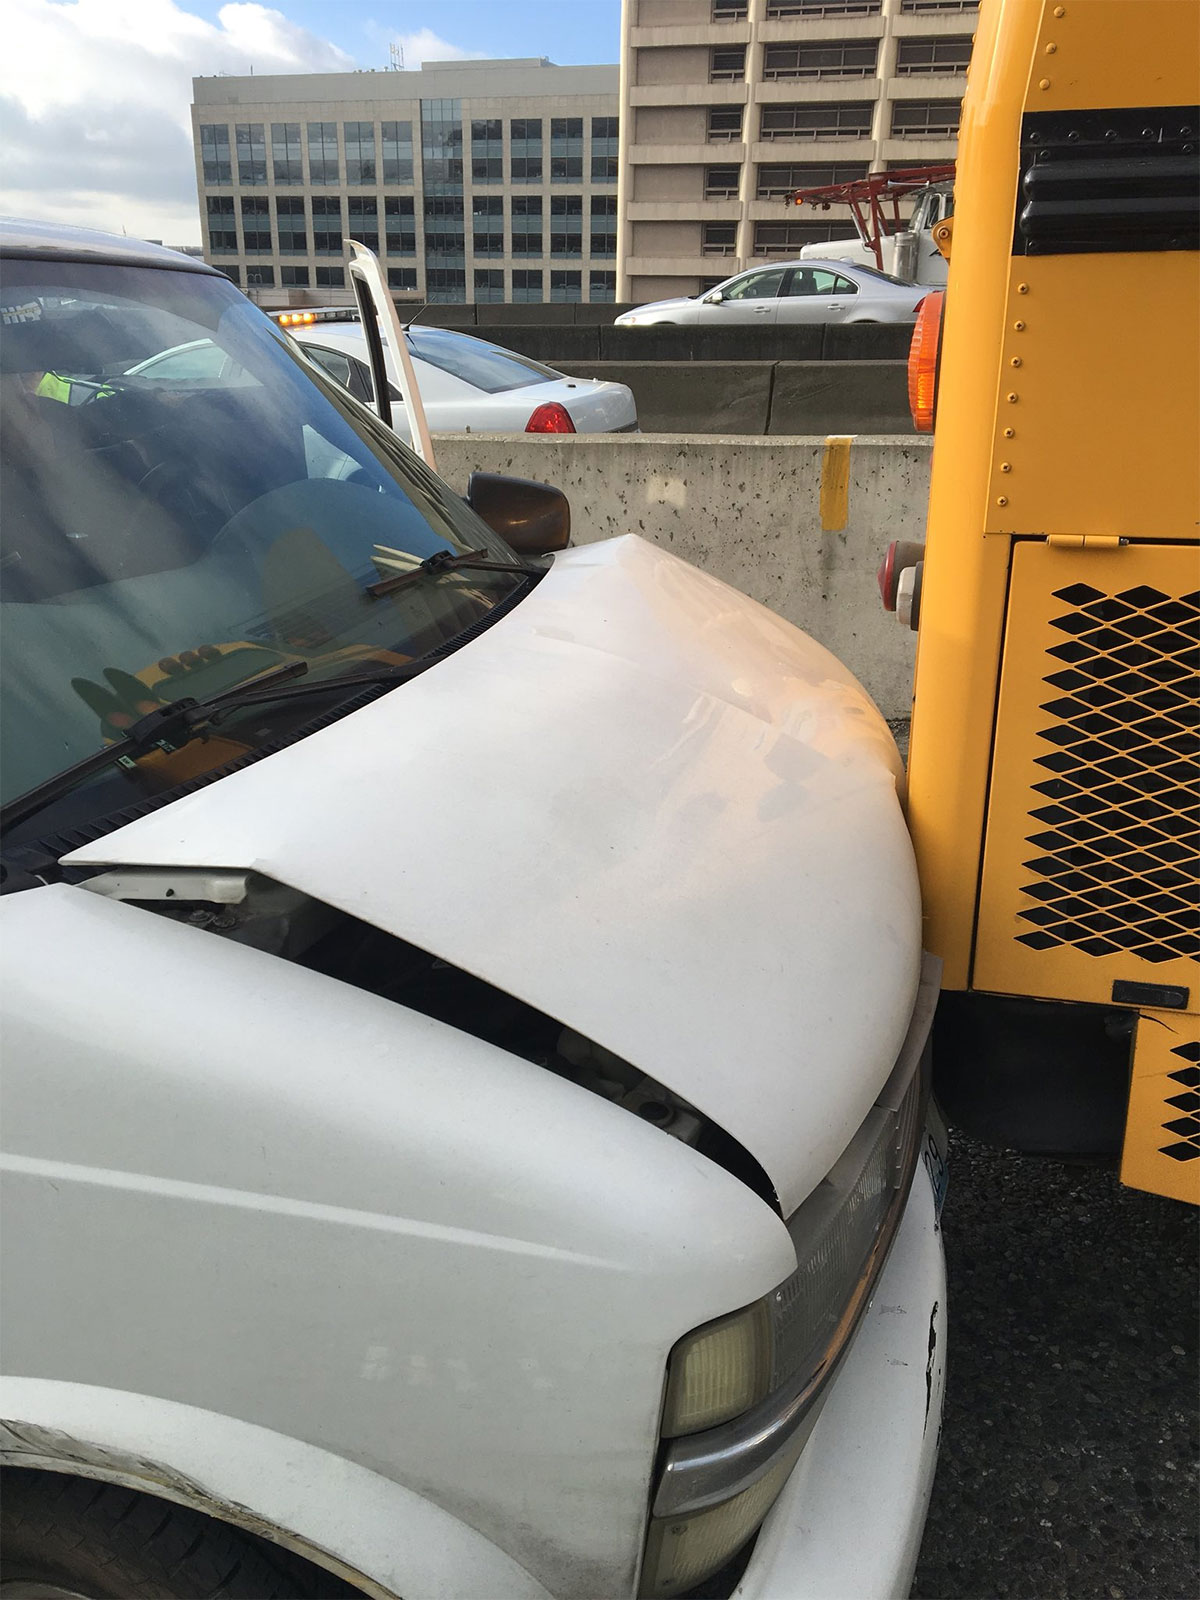 A school bus was rammed on Interstate 5 in Seattle. No children were hurt. Two people were arrestedWash. State Patrol photo